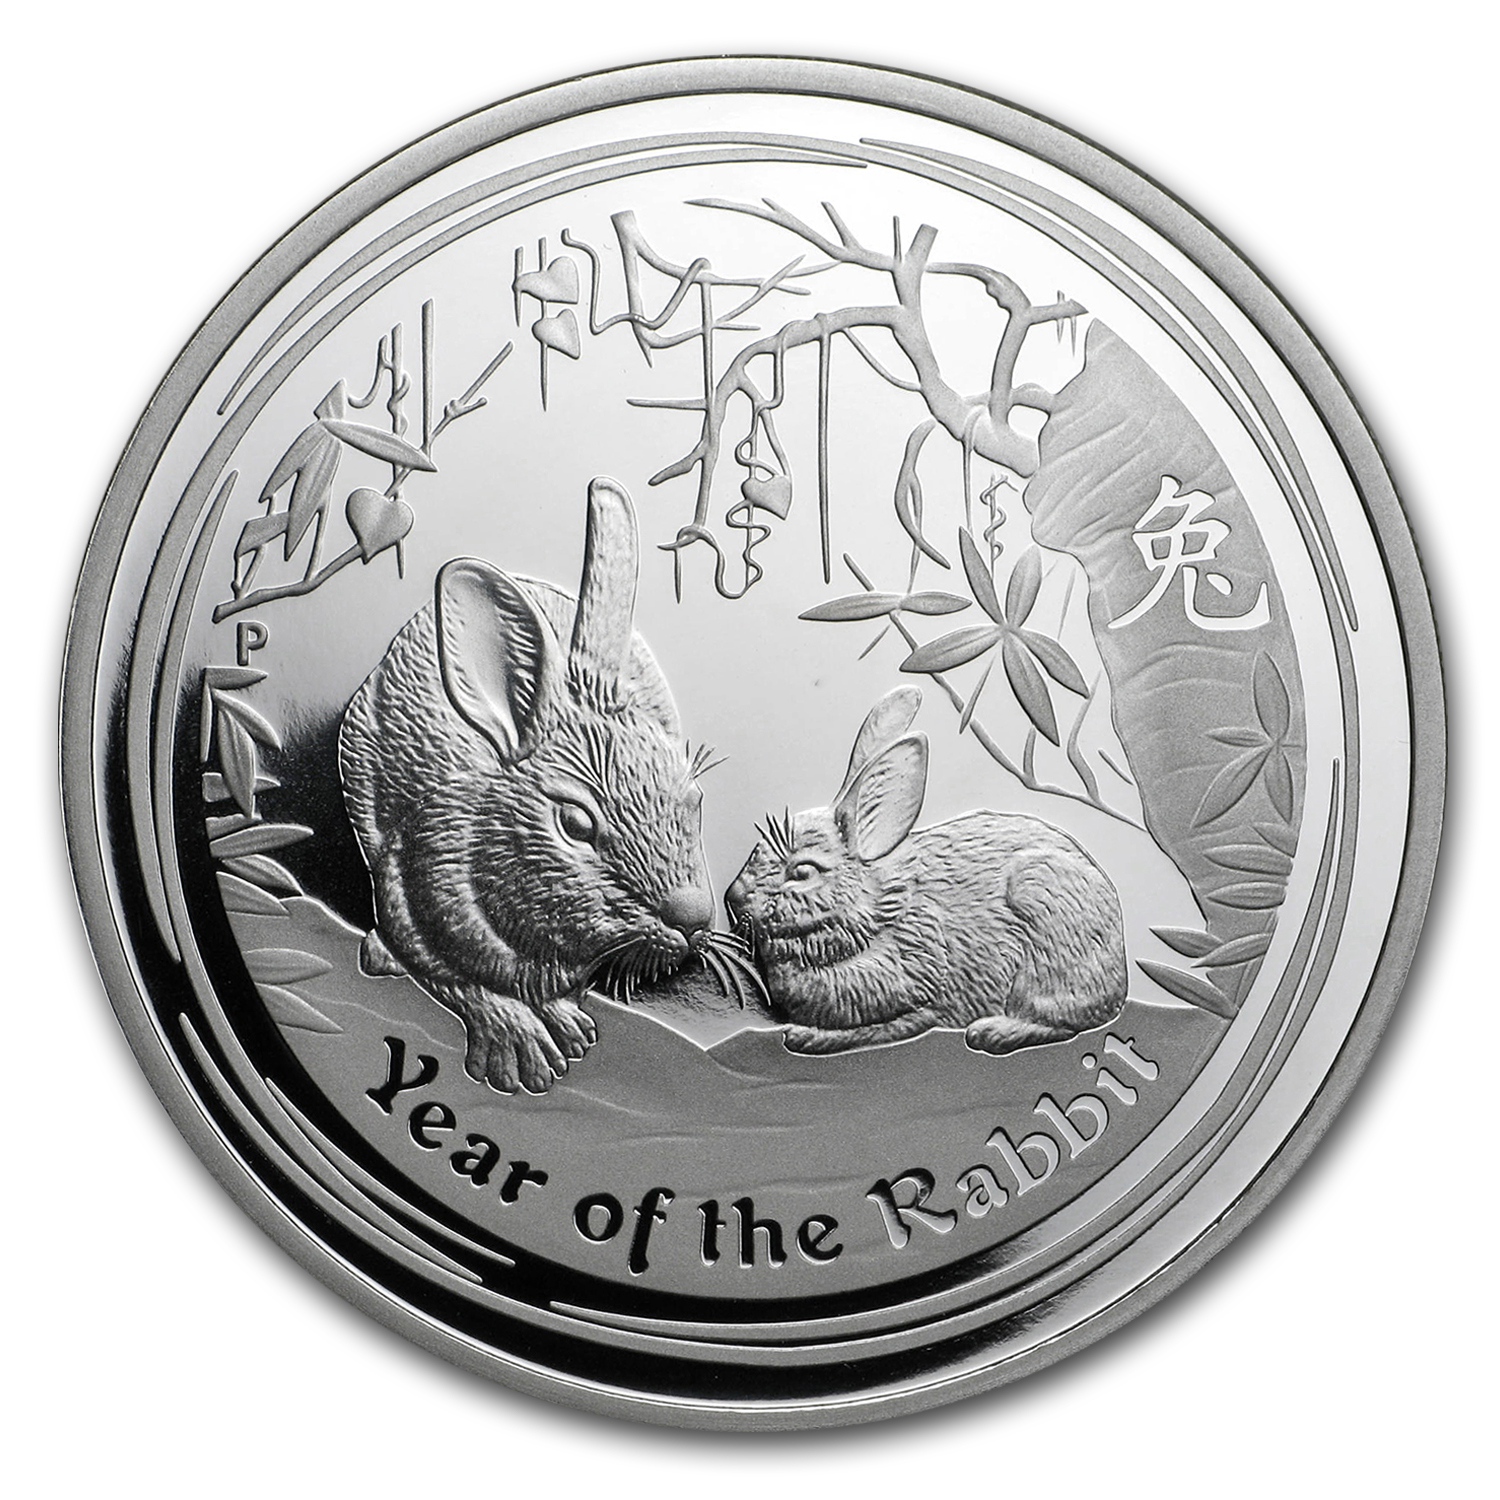 2011 Year of the Rabbit - 1 oz Proof Silver Coin (Series II)